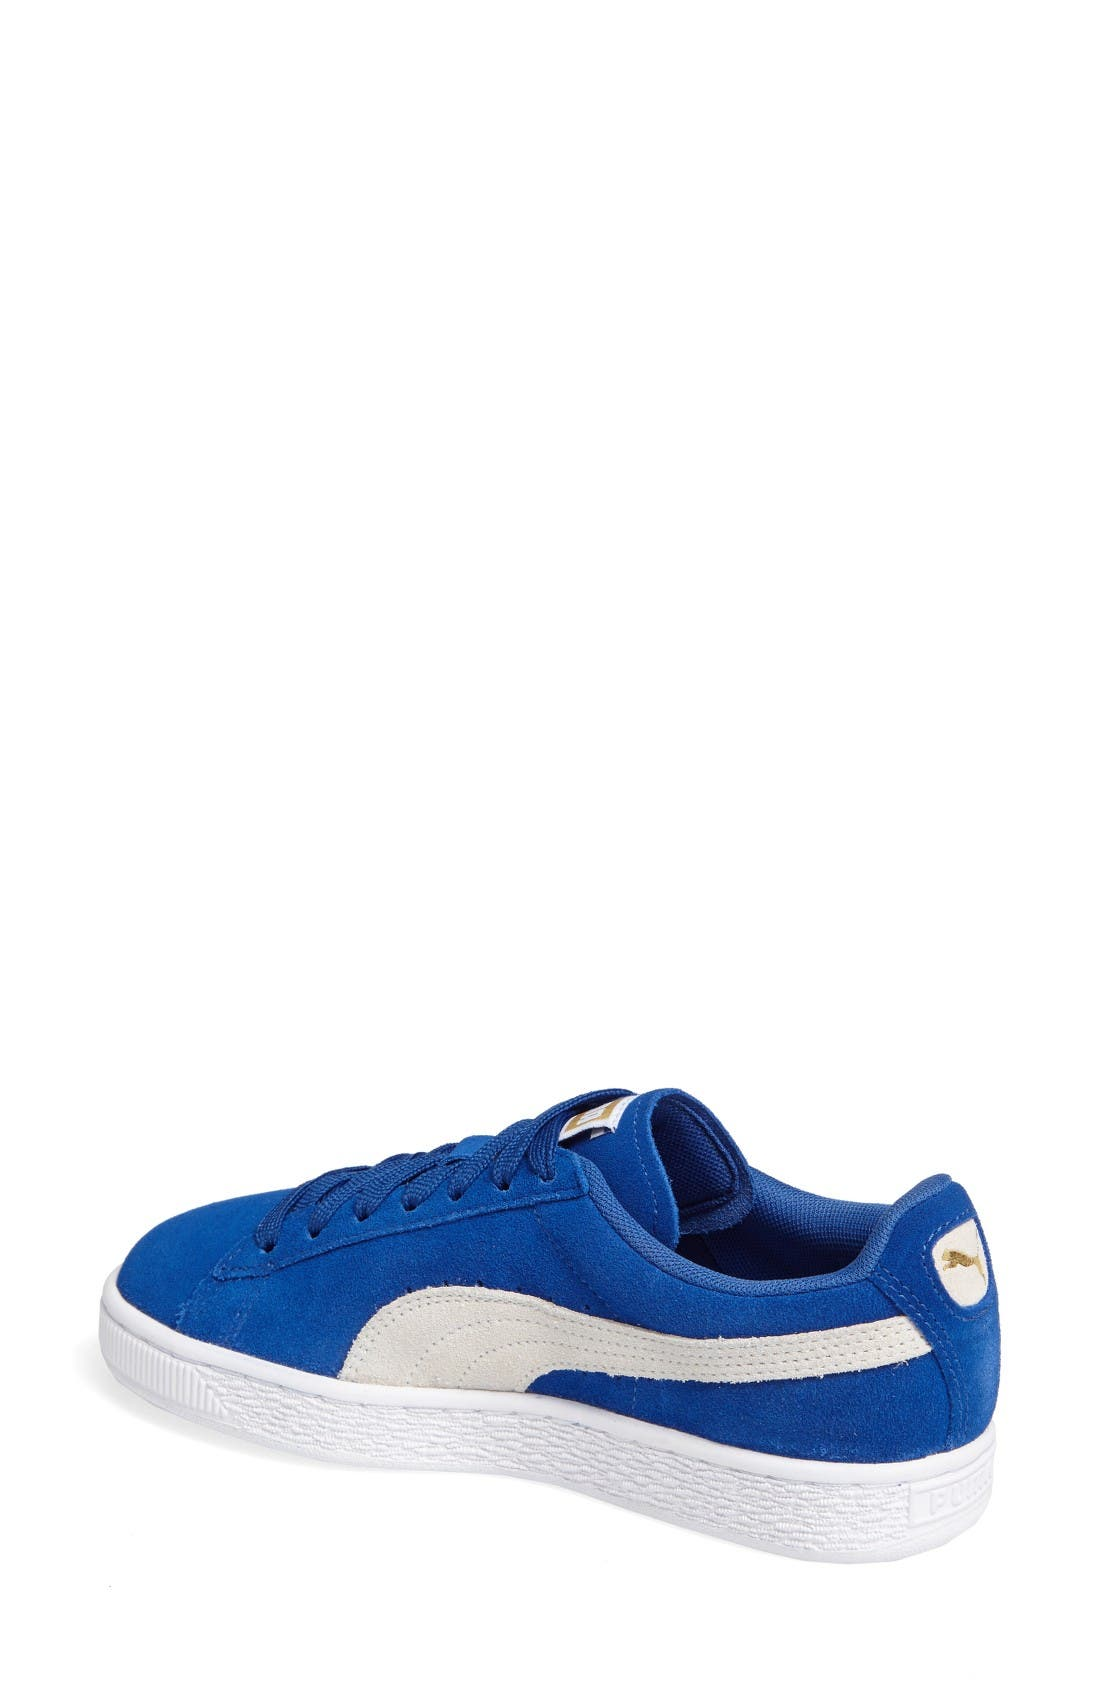 Alternate Image 2  - PUMA Suede Sneaker (Women)